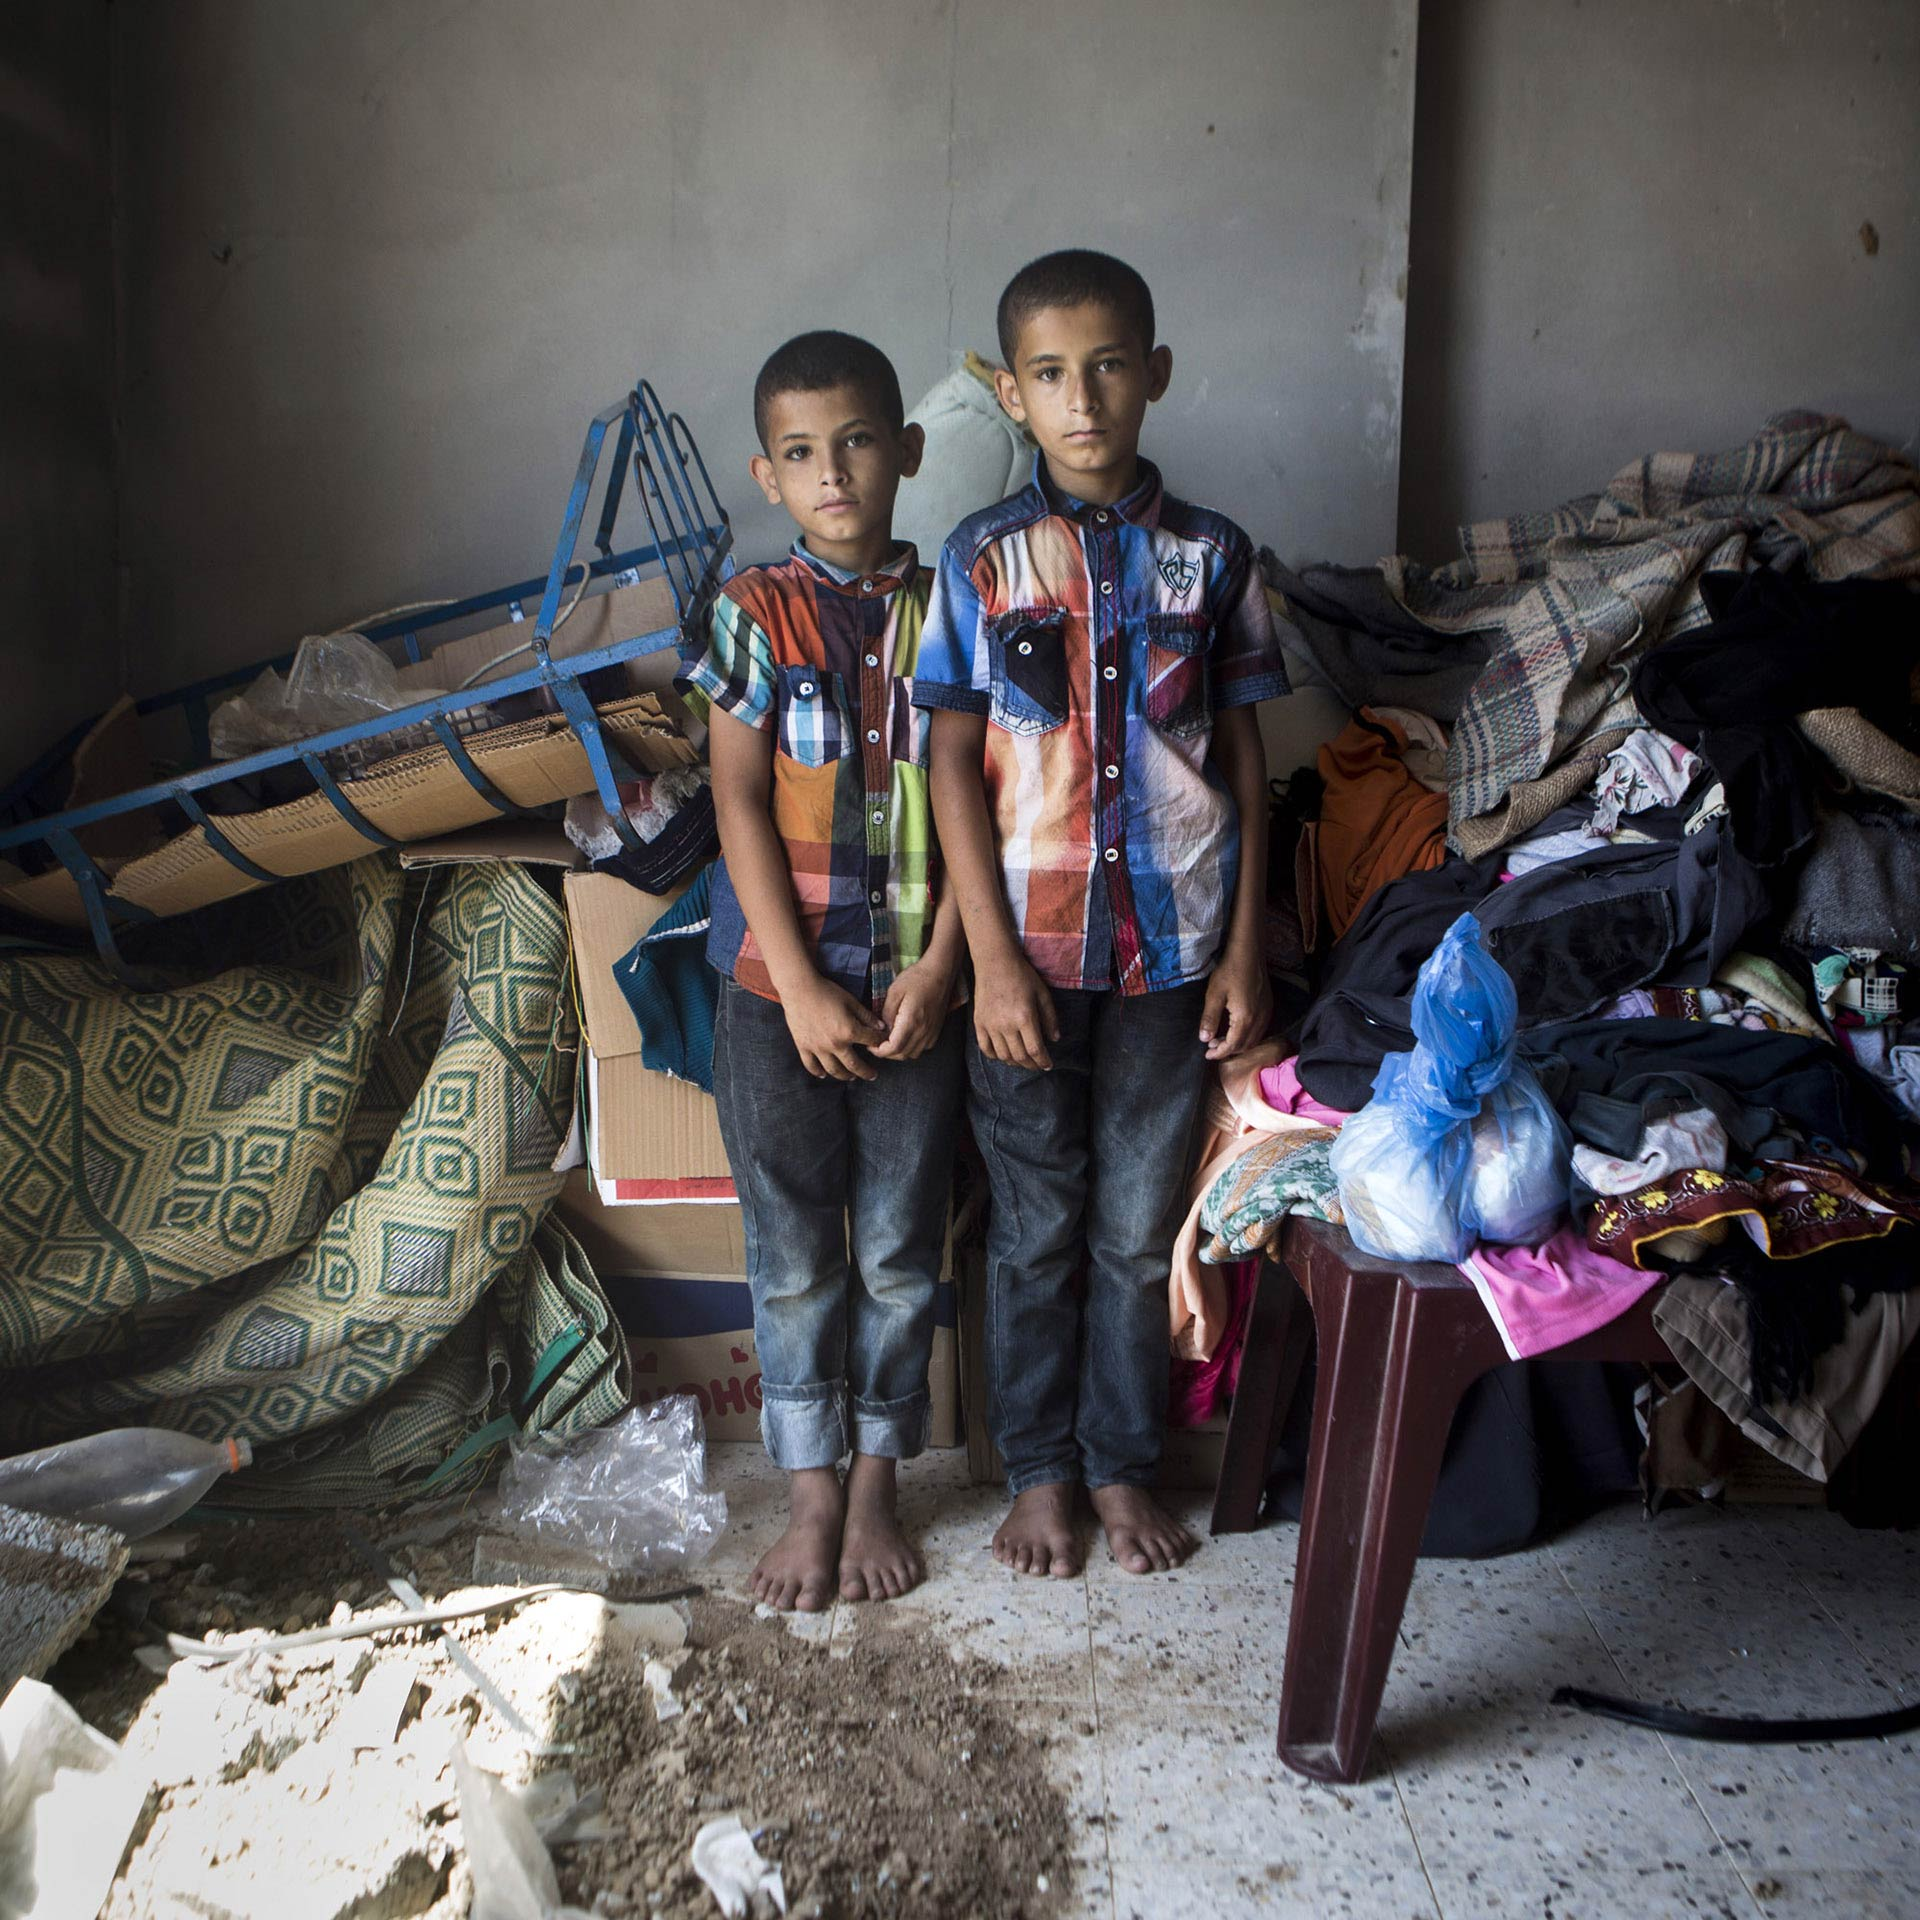 Ibrahim, the smaller of the twin brothers on the photo, says he misses his best friend, eight-year-old Maysara al-Louh. The two boys, Ibrahim and Abdallah, are standing in their destroyed bedroom, in Deir al-Balah, right in front of where the al-Louh family home used to stand. Their bedroom was damaged in the bombing that killed Maysara and seven other members of al-Louh family.